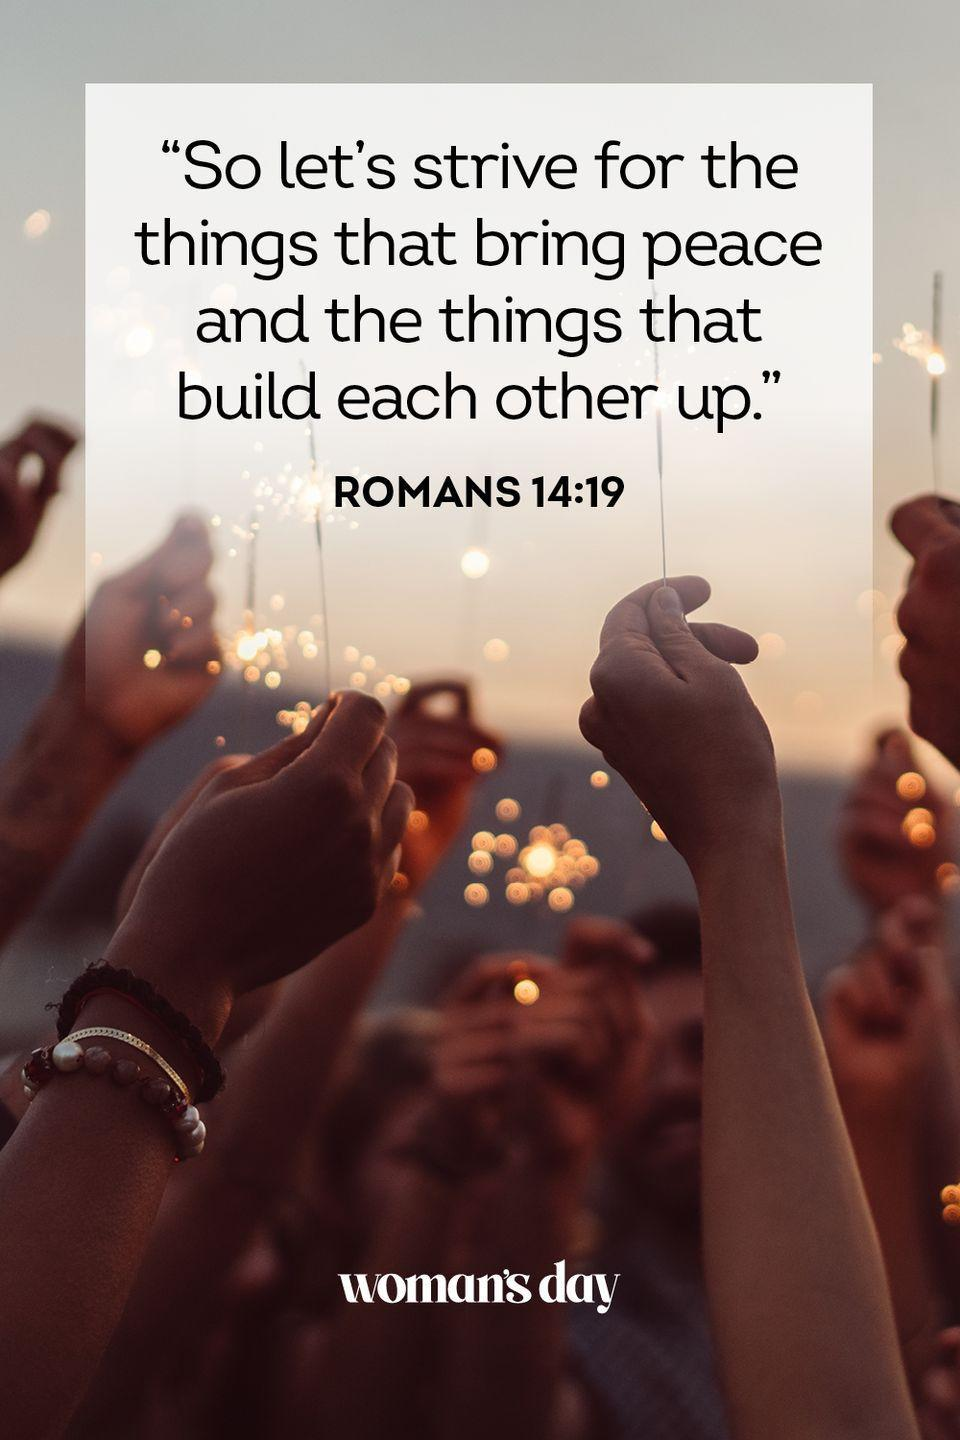 """<p>""""So let's strive for the things that bring peace and the things that build each other up."""" — Romans 14:19</p><p><strong>The Good News</strong>: It's not just God who grants peace. You can bring more peace into your life by helping others. It's a win-win for everyone.</p>"""